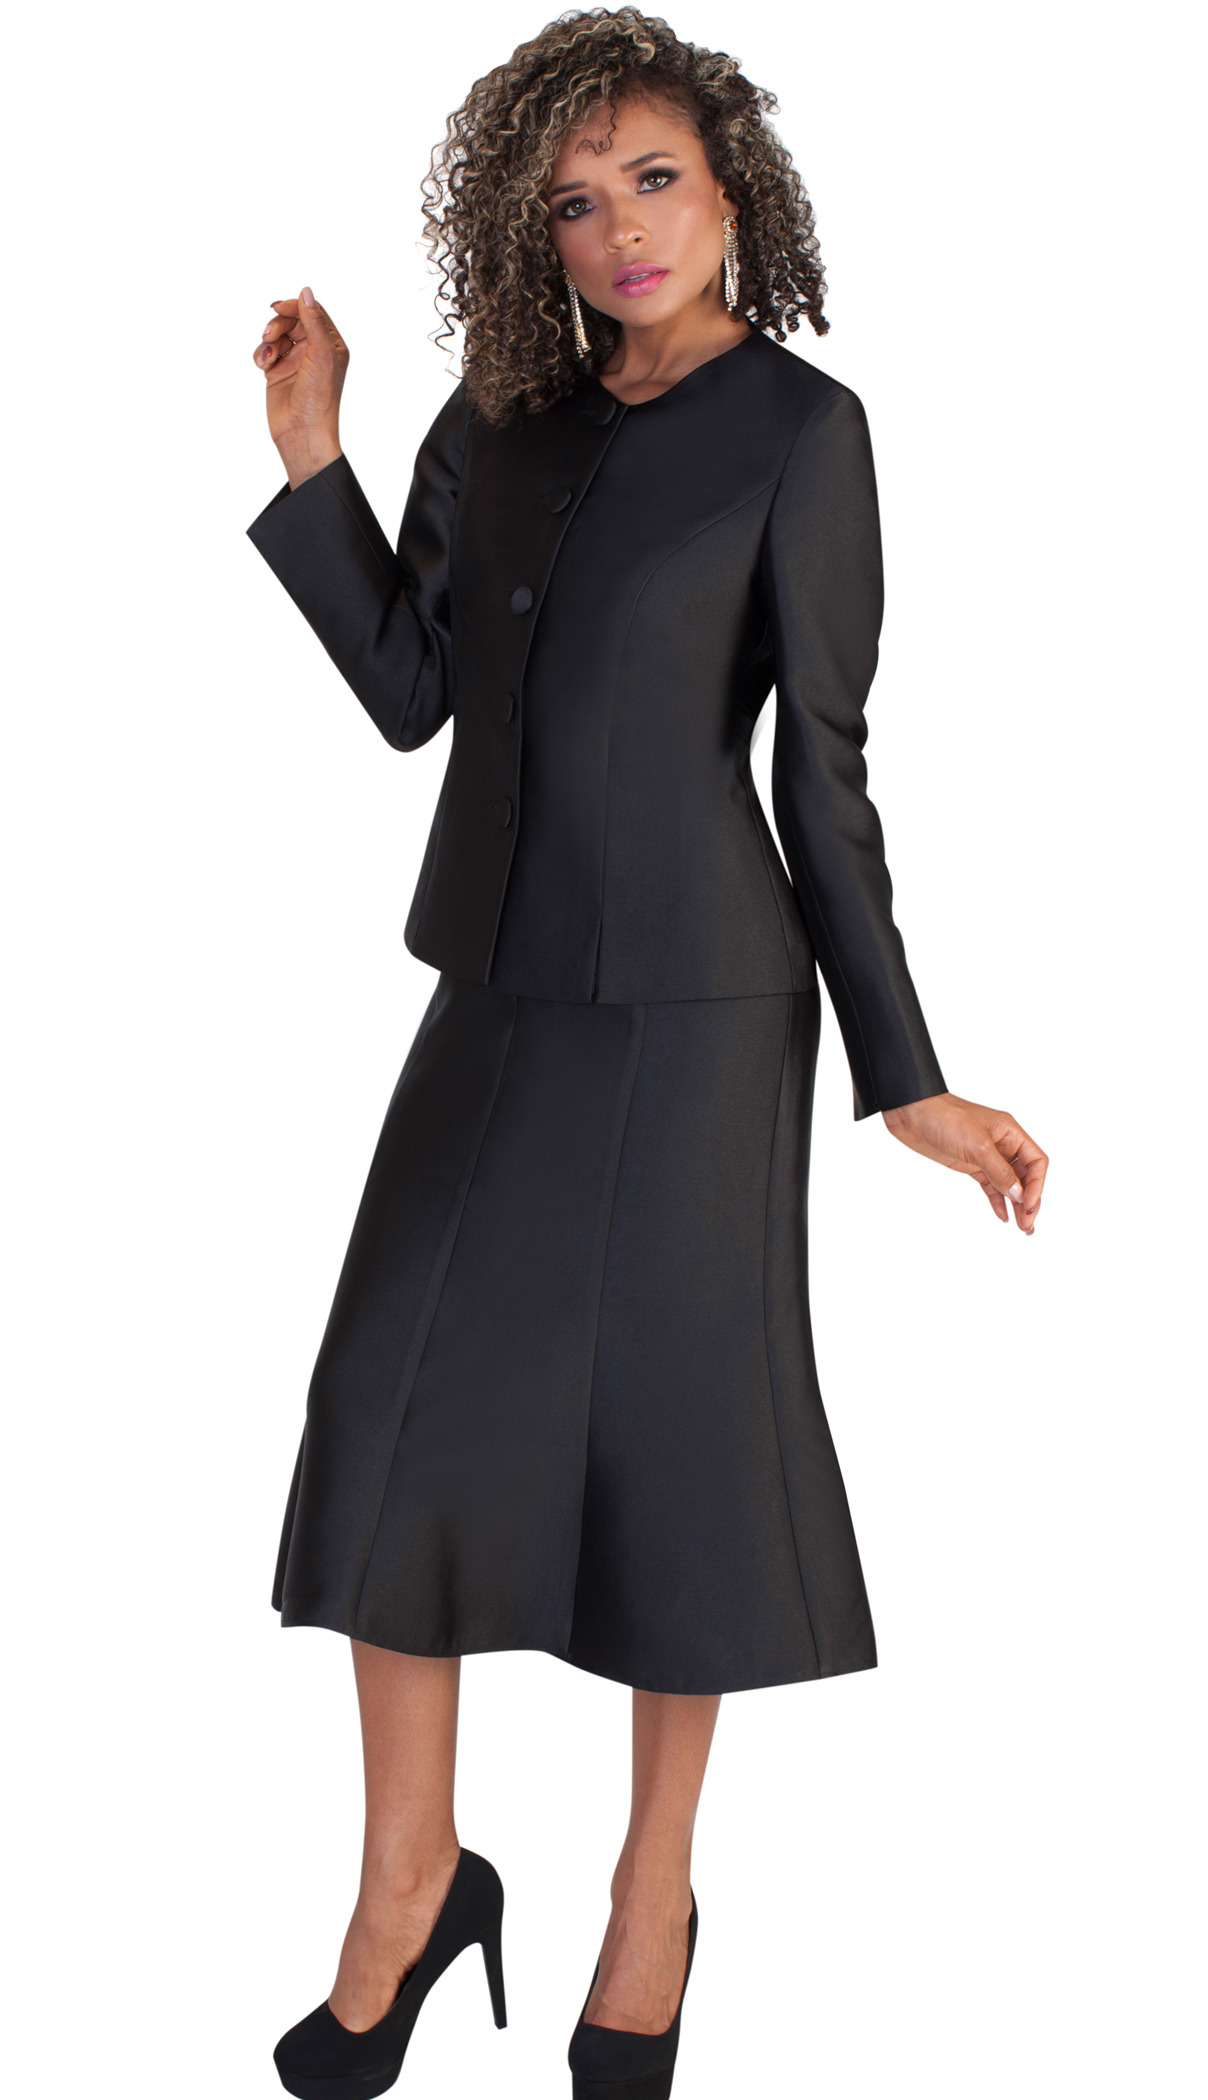 Tally Taylor Suit 4636-BLK